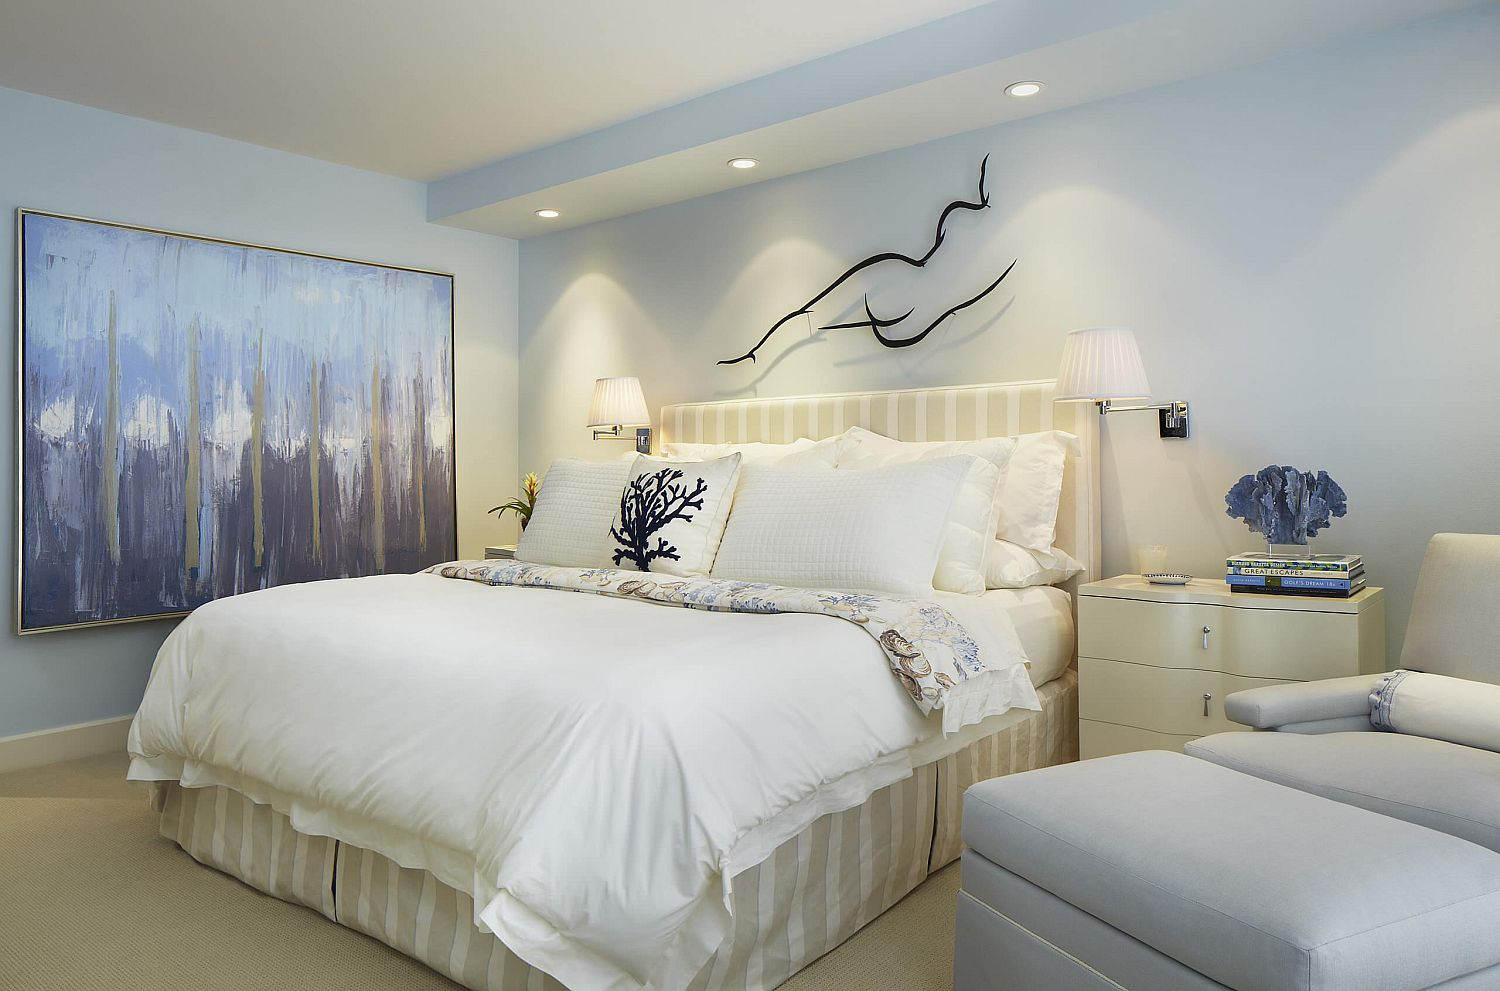 White and blue hues in the wall art elevate the crisp and neutral color palette of this bedroom